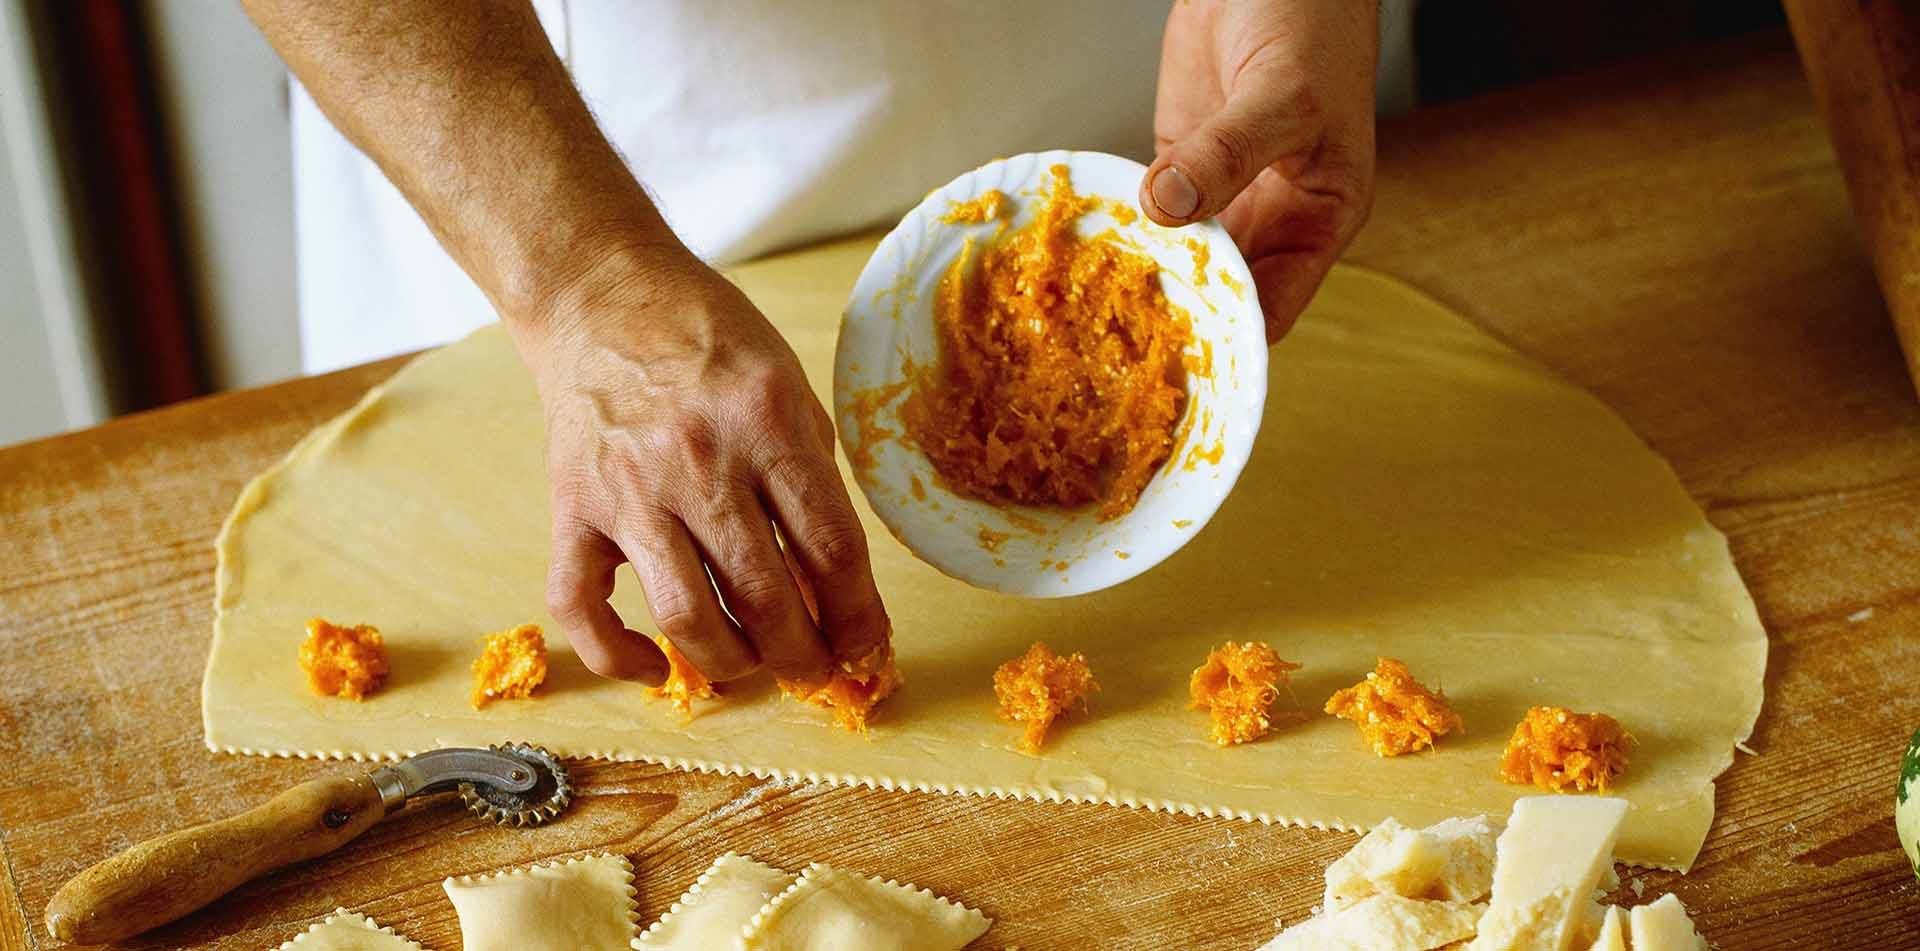 Europe Italy Amalfi Coast chef making handmade butternut squash agnolotti pasta food wine tour - luxury vacation destinations